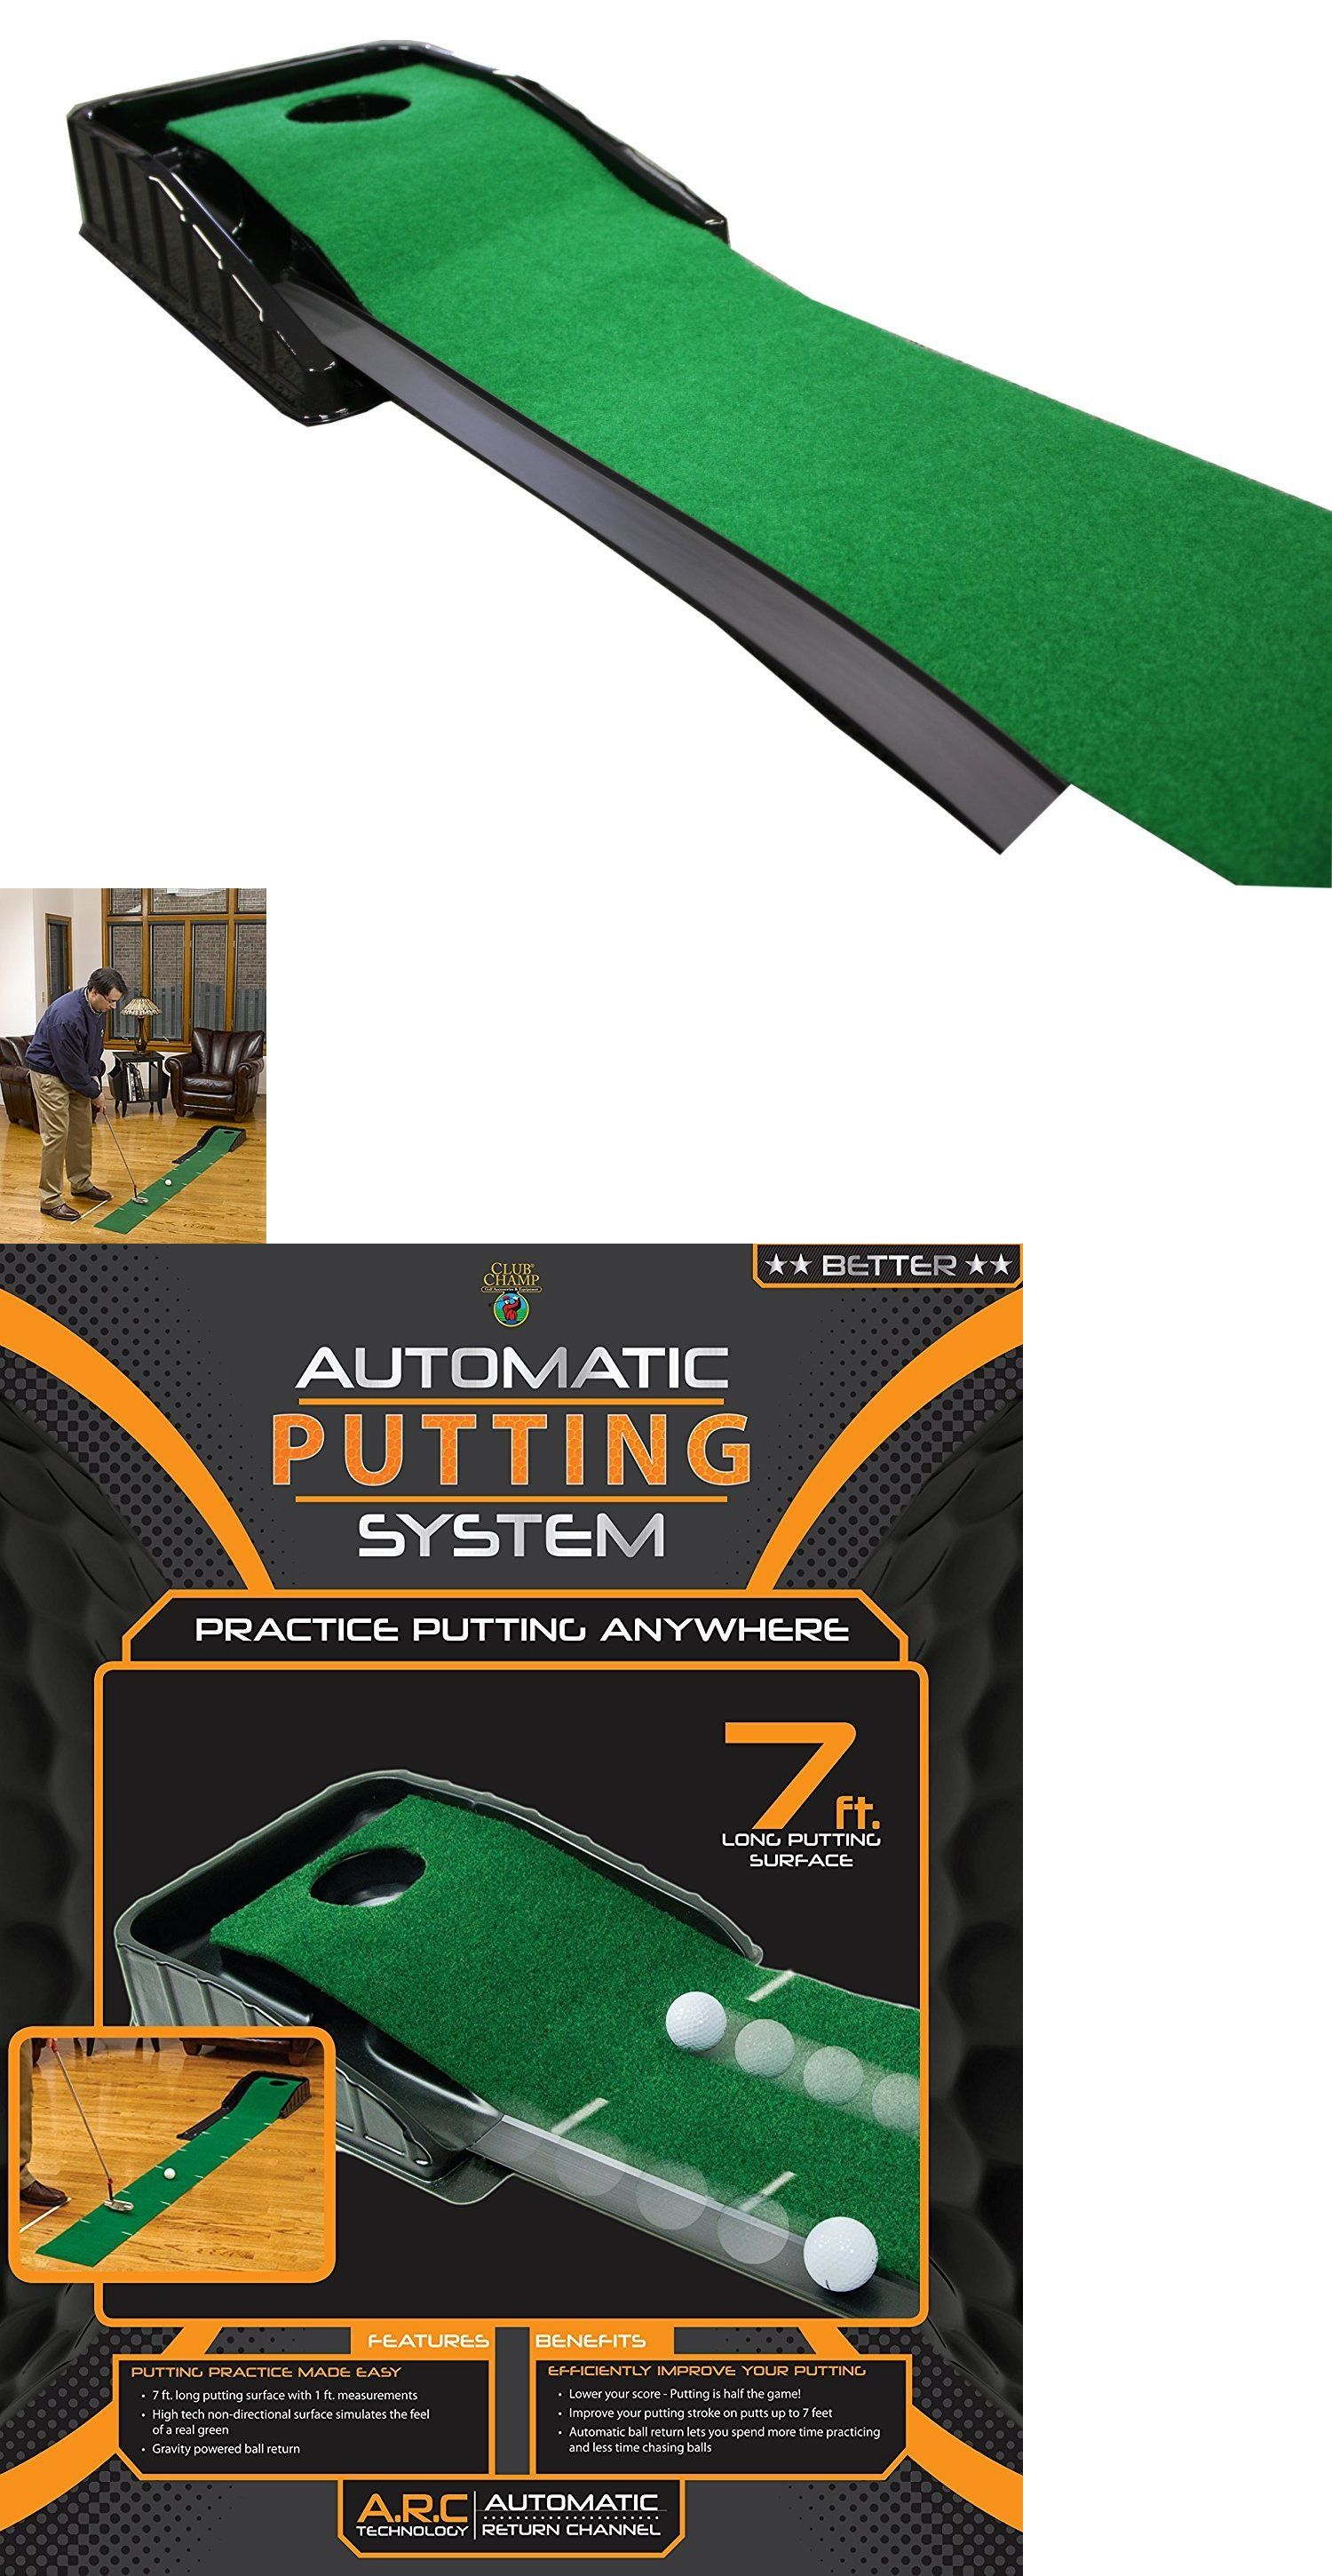 Putting greens and aids indoor putting green automatic putt